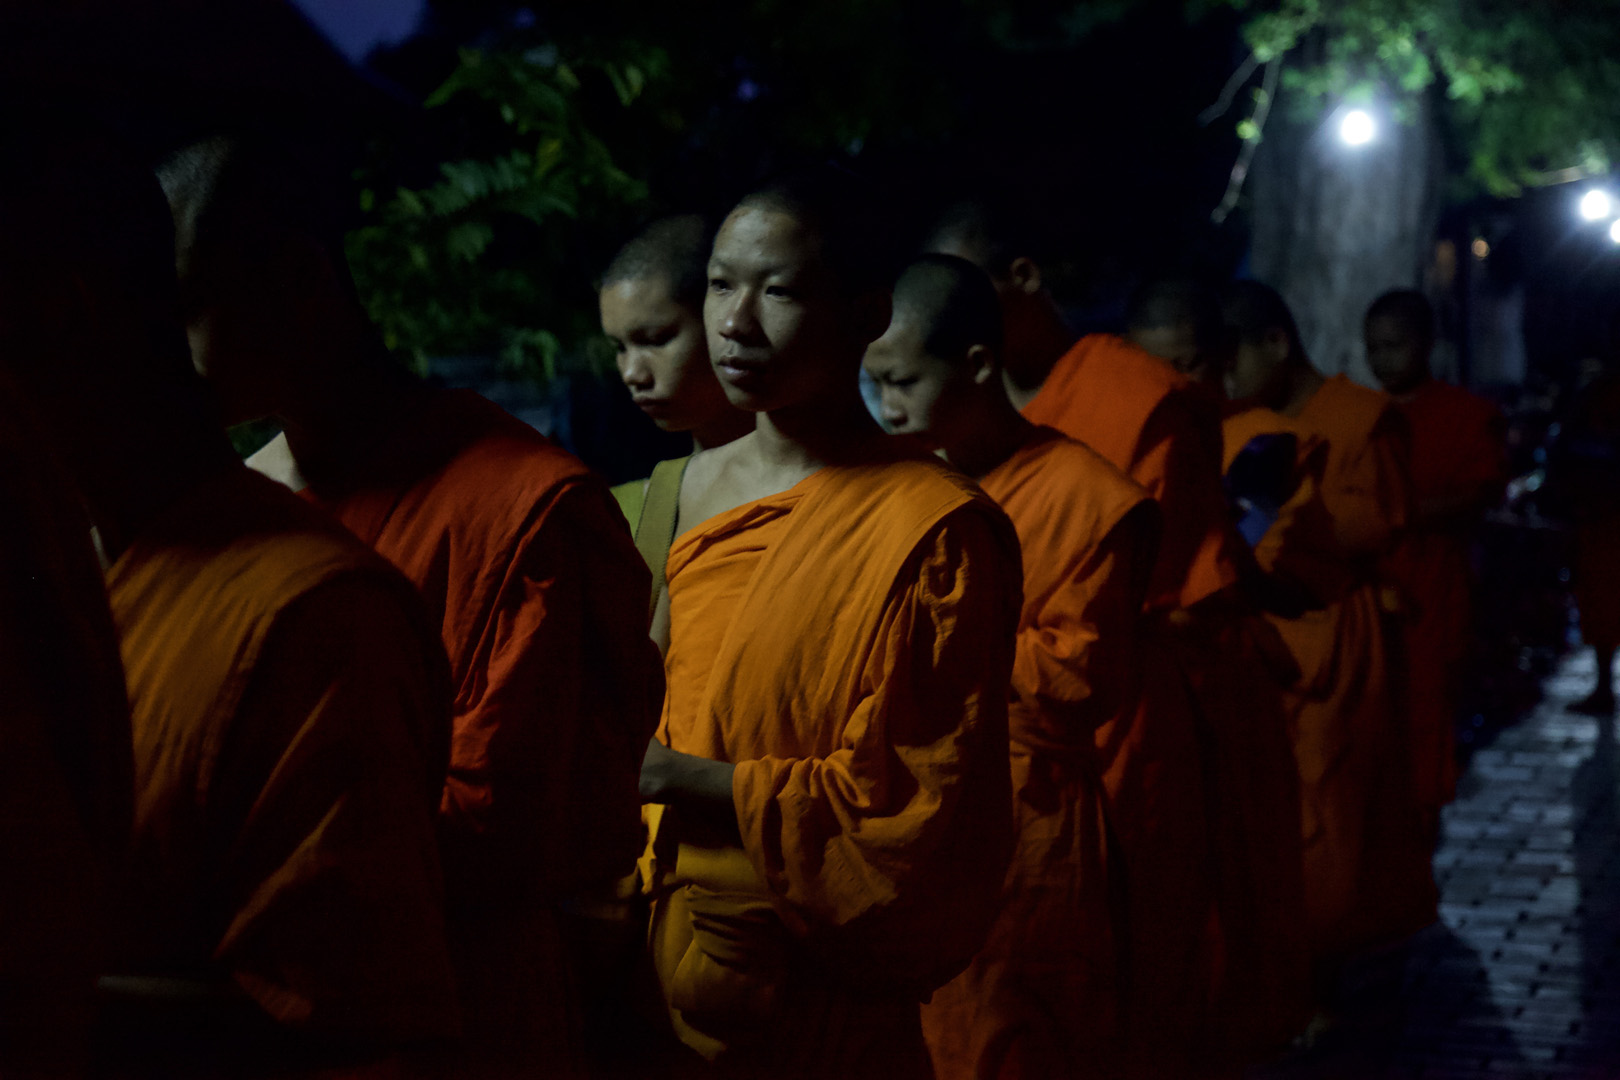 Buddhist monks in Luang Prabang